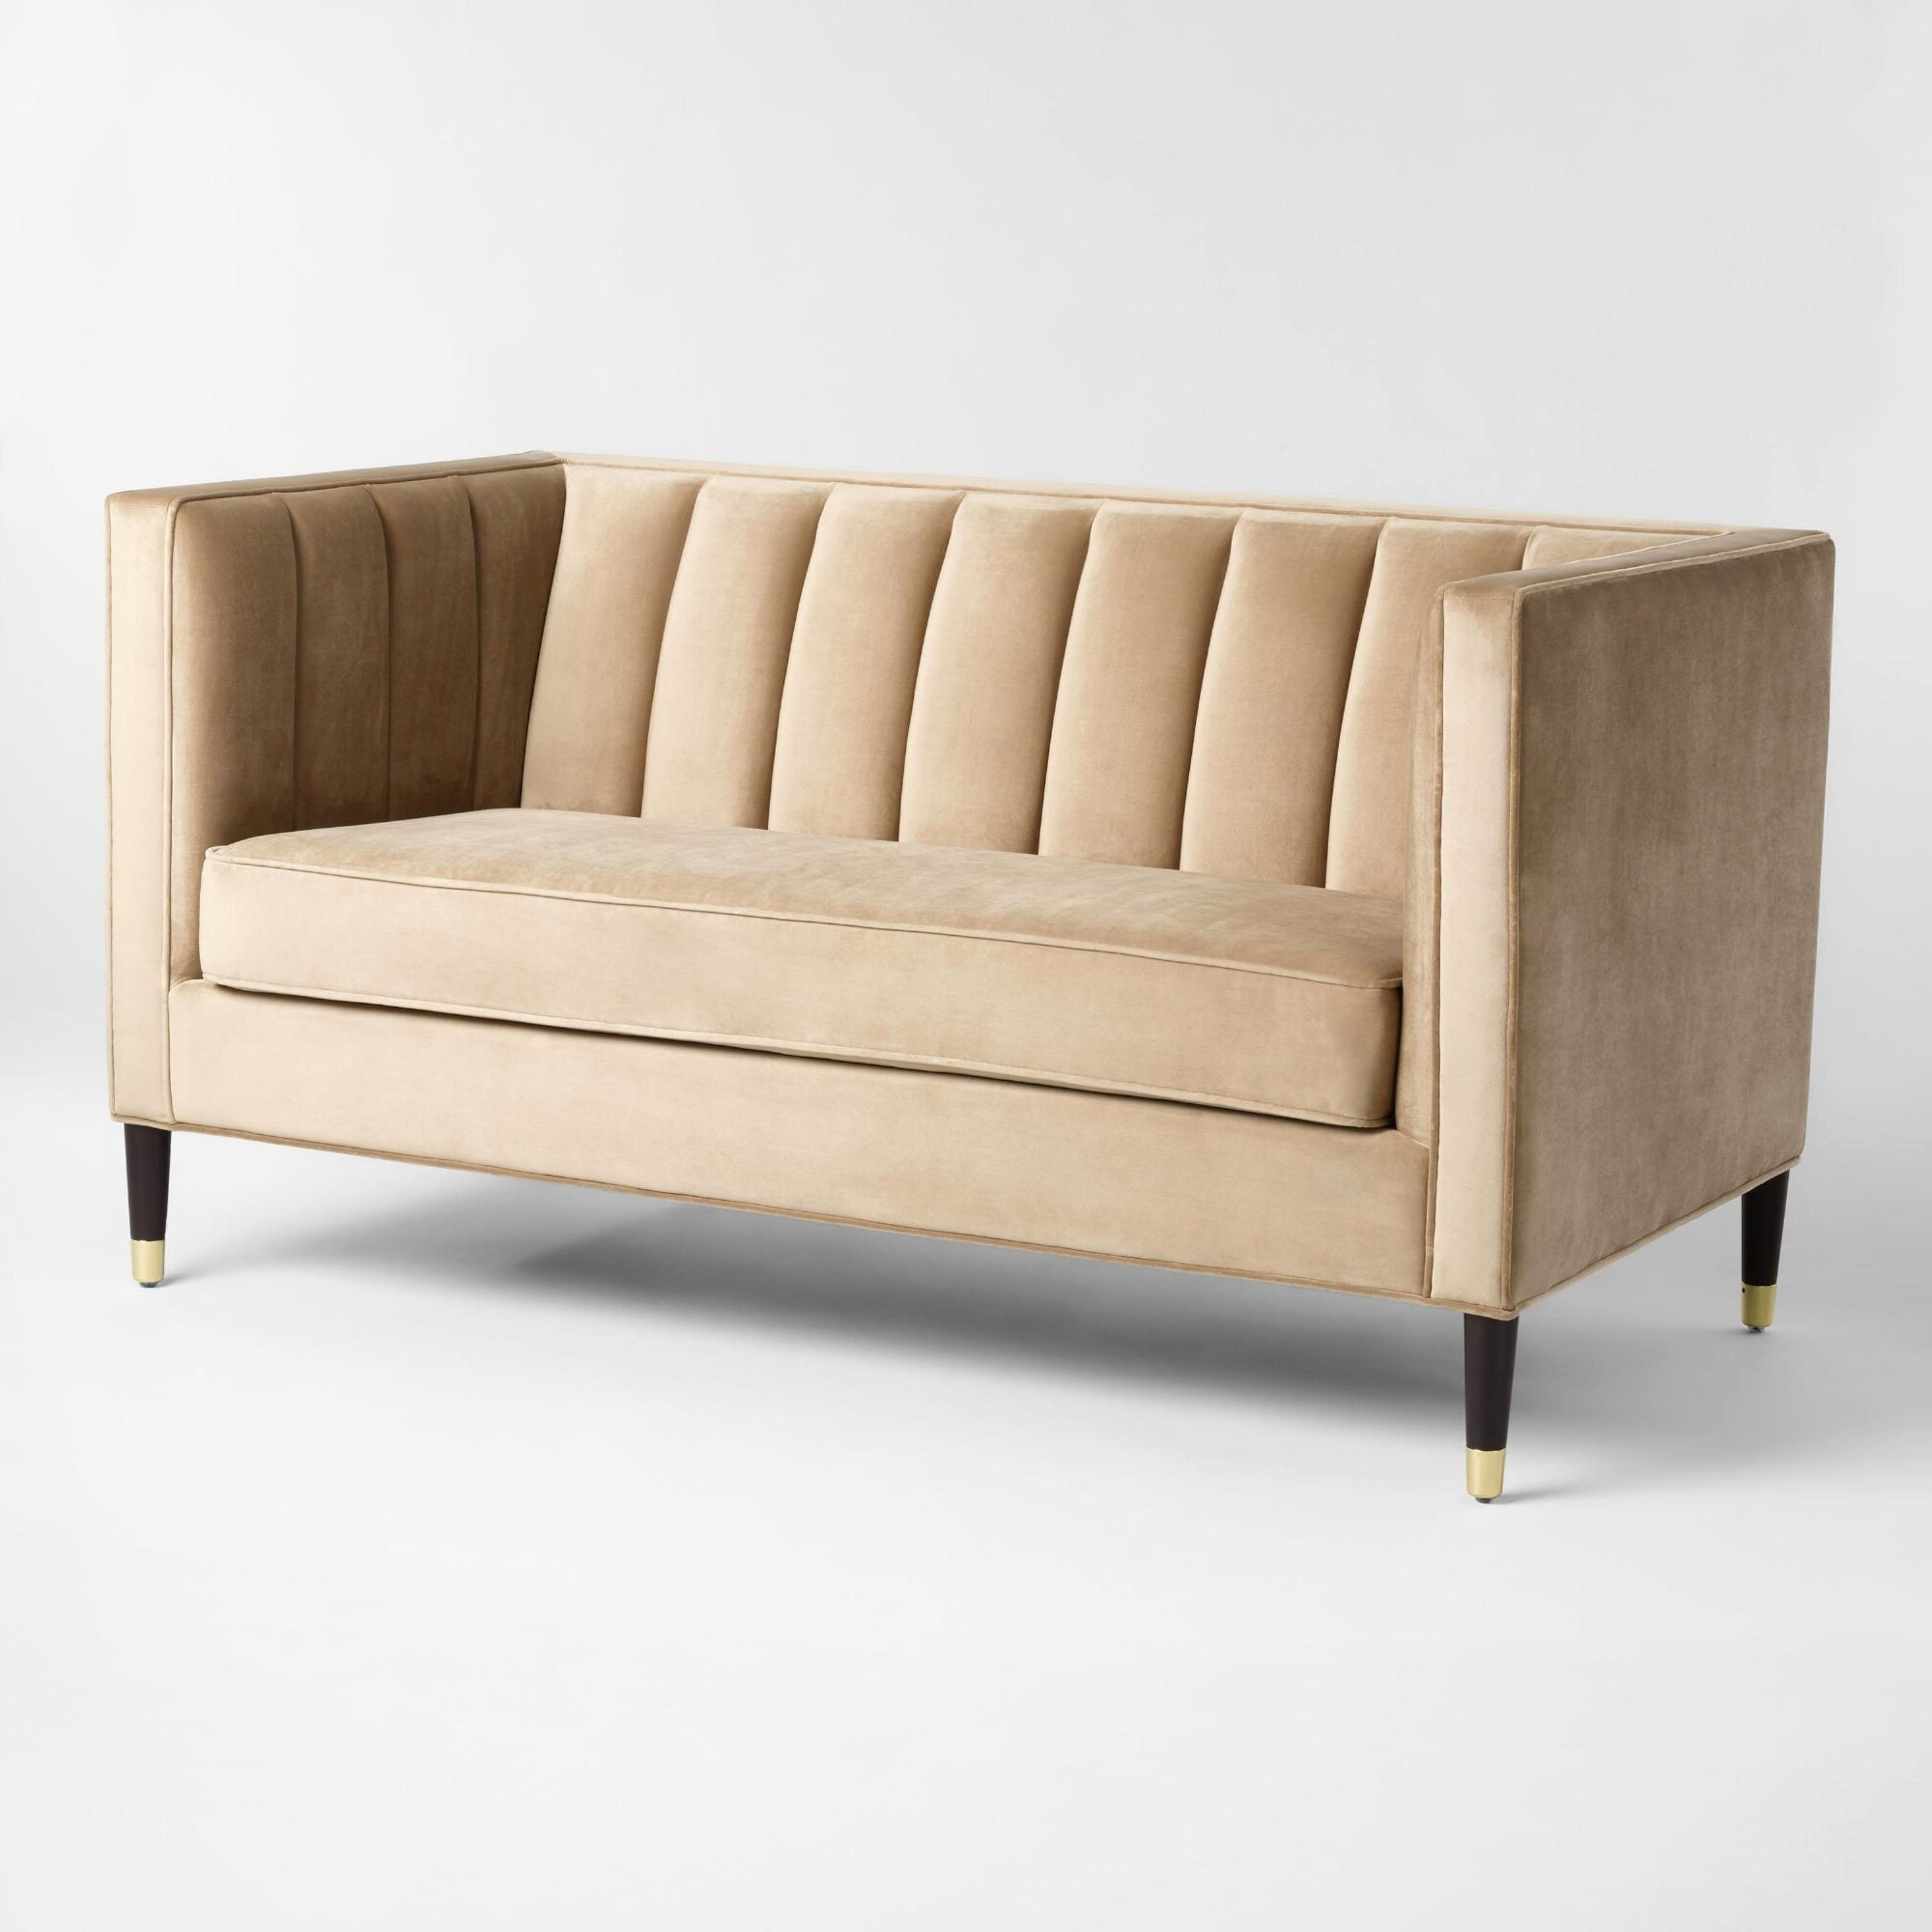 Famous Loveseat Chaises For Sofa : Loveseat Chaise Sofa Nice Sofas Couches And Loveseats World (View 6 of 15)